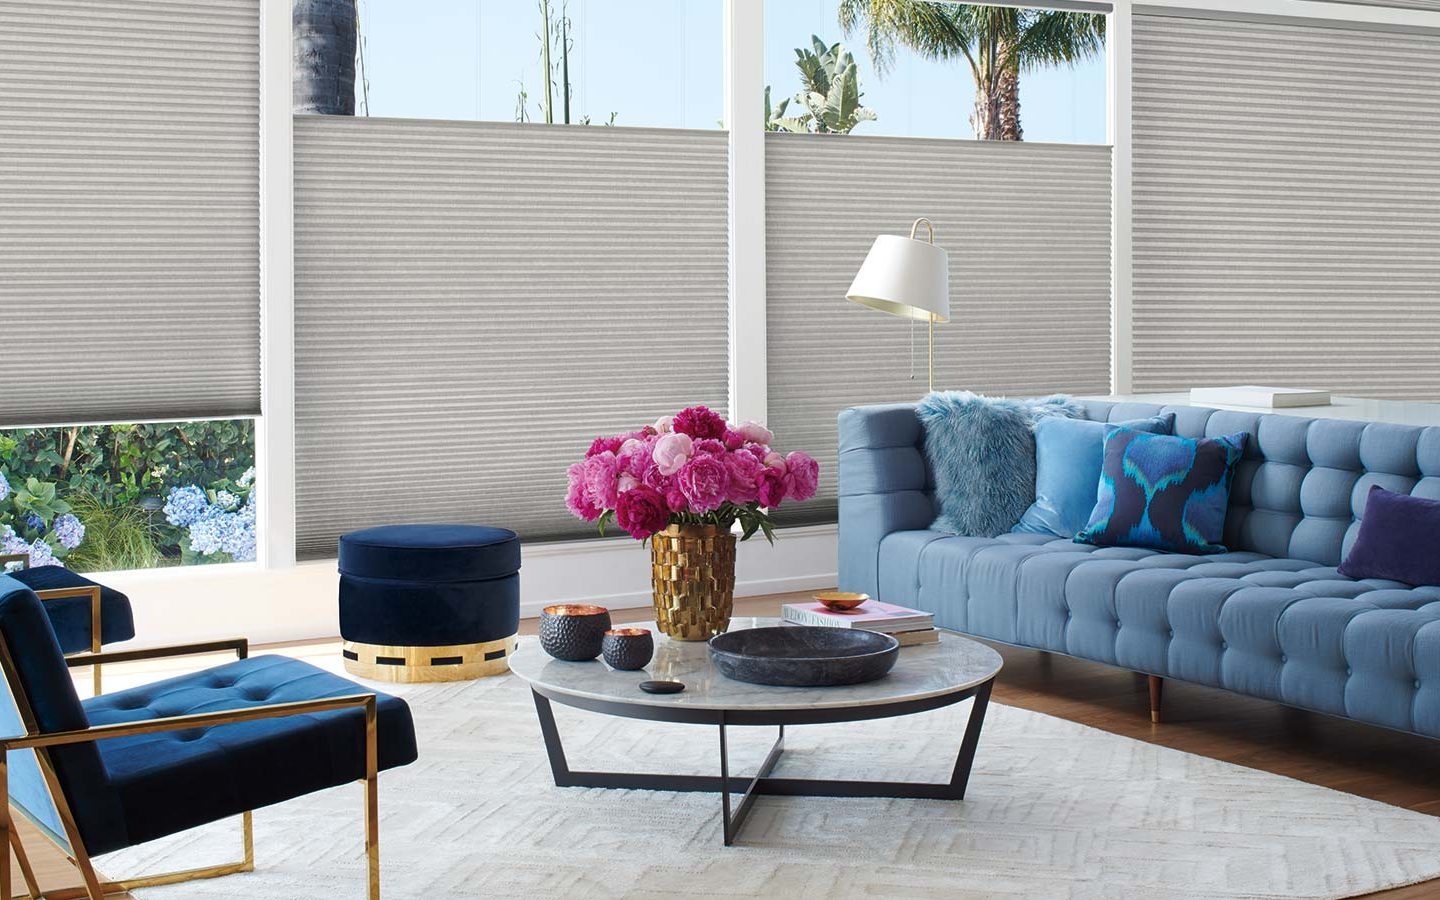 Hunter Douglas Powerview motorized blinds in a well decorated living room